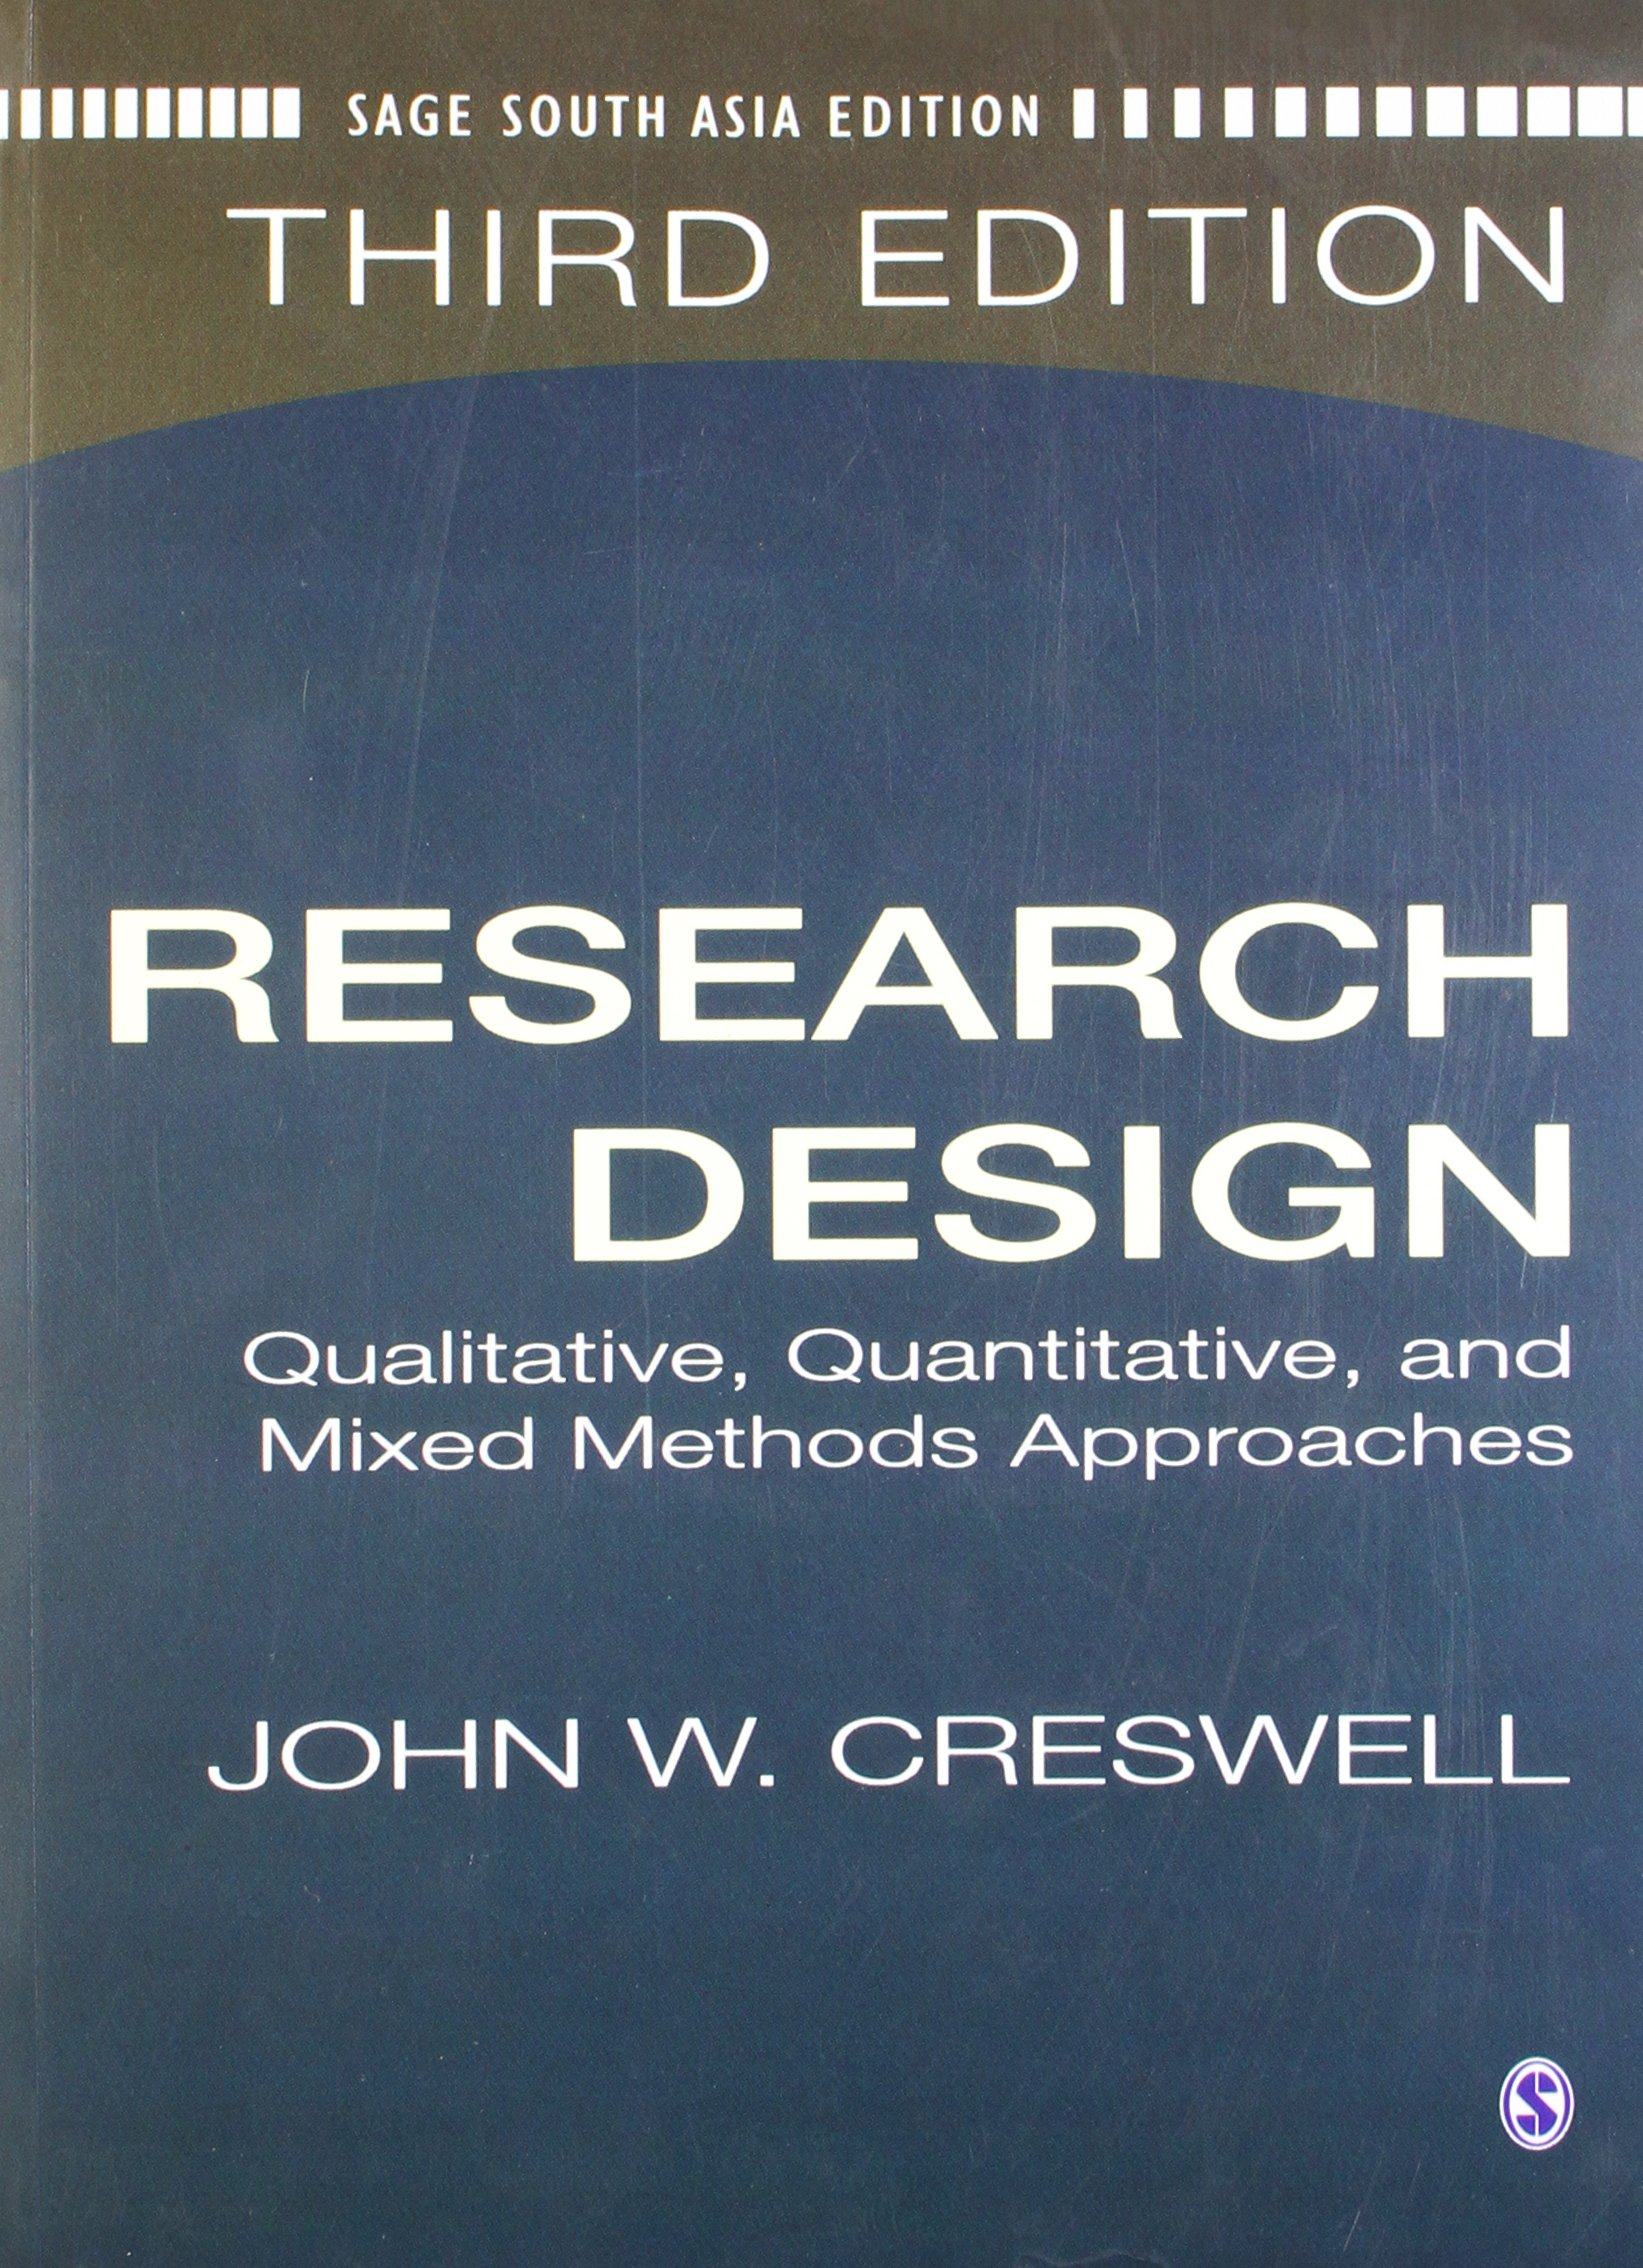 Research Design: Qualitative, Quantitative, and Mixed Methods Approaches, 3rd Edition